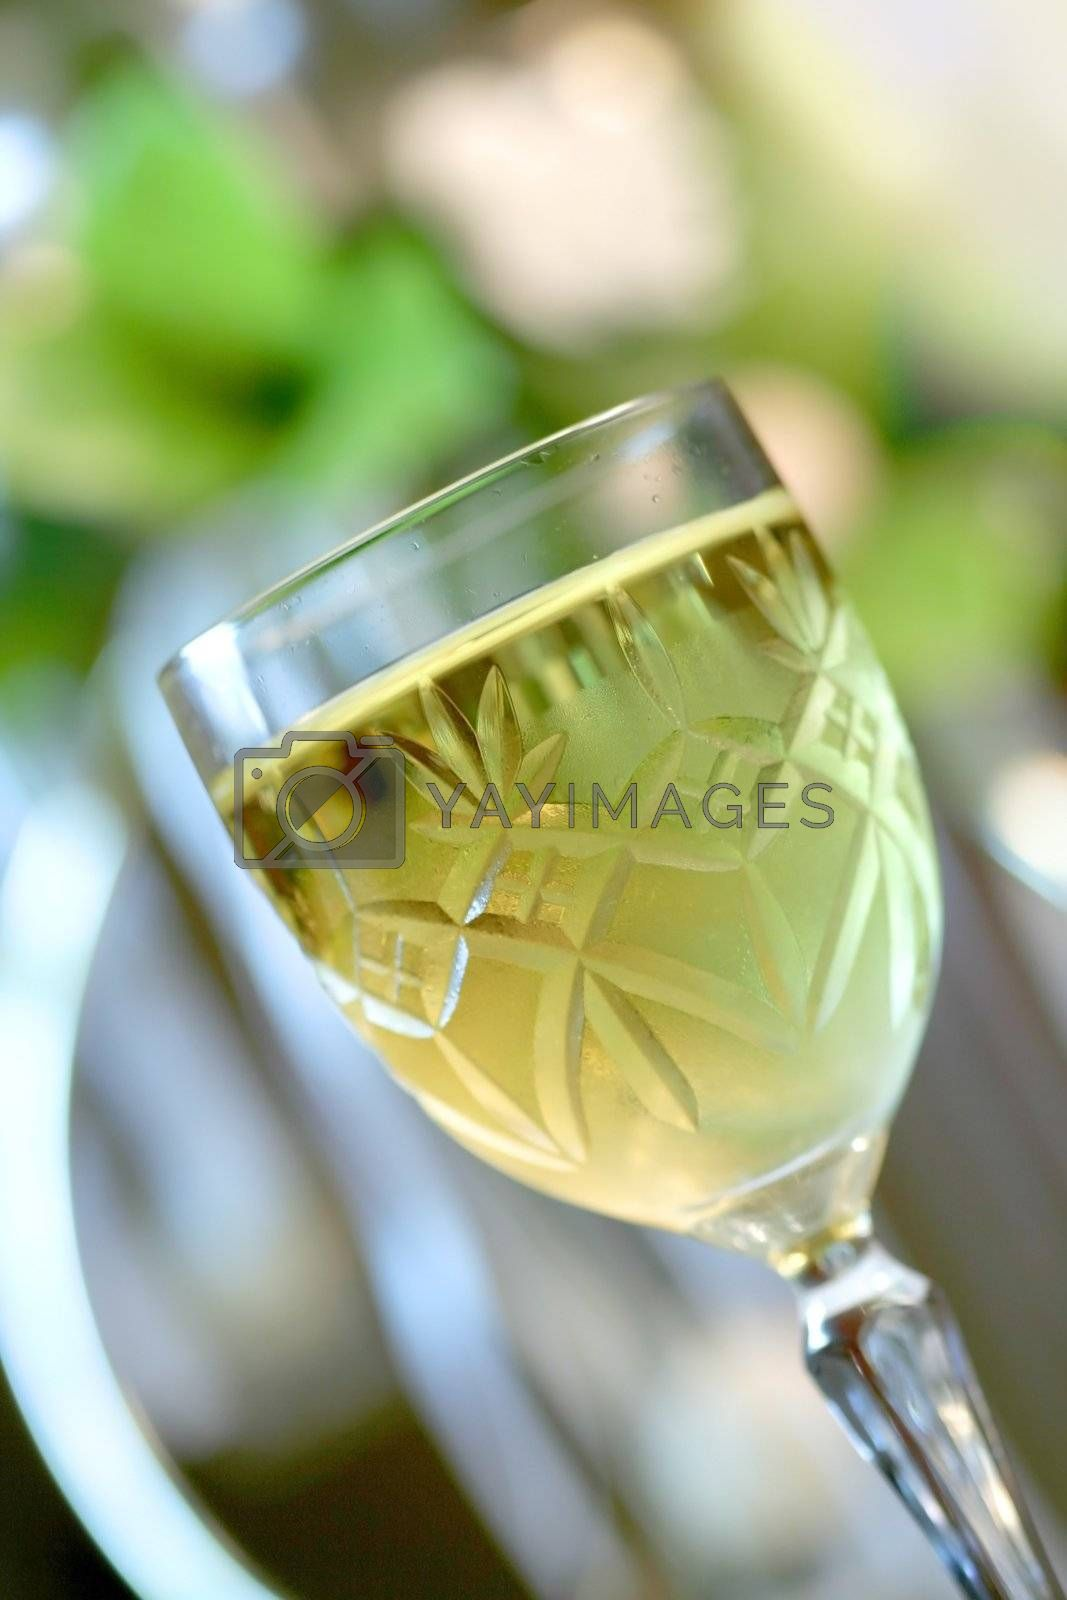 An image of a glass of white wine on a celebration party table